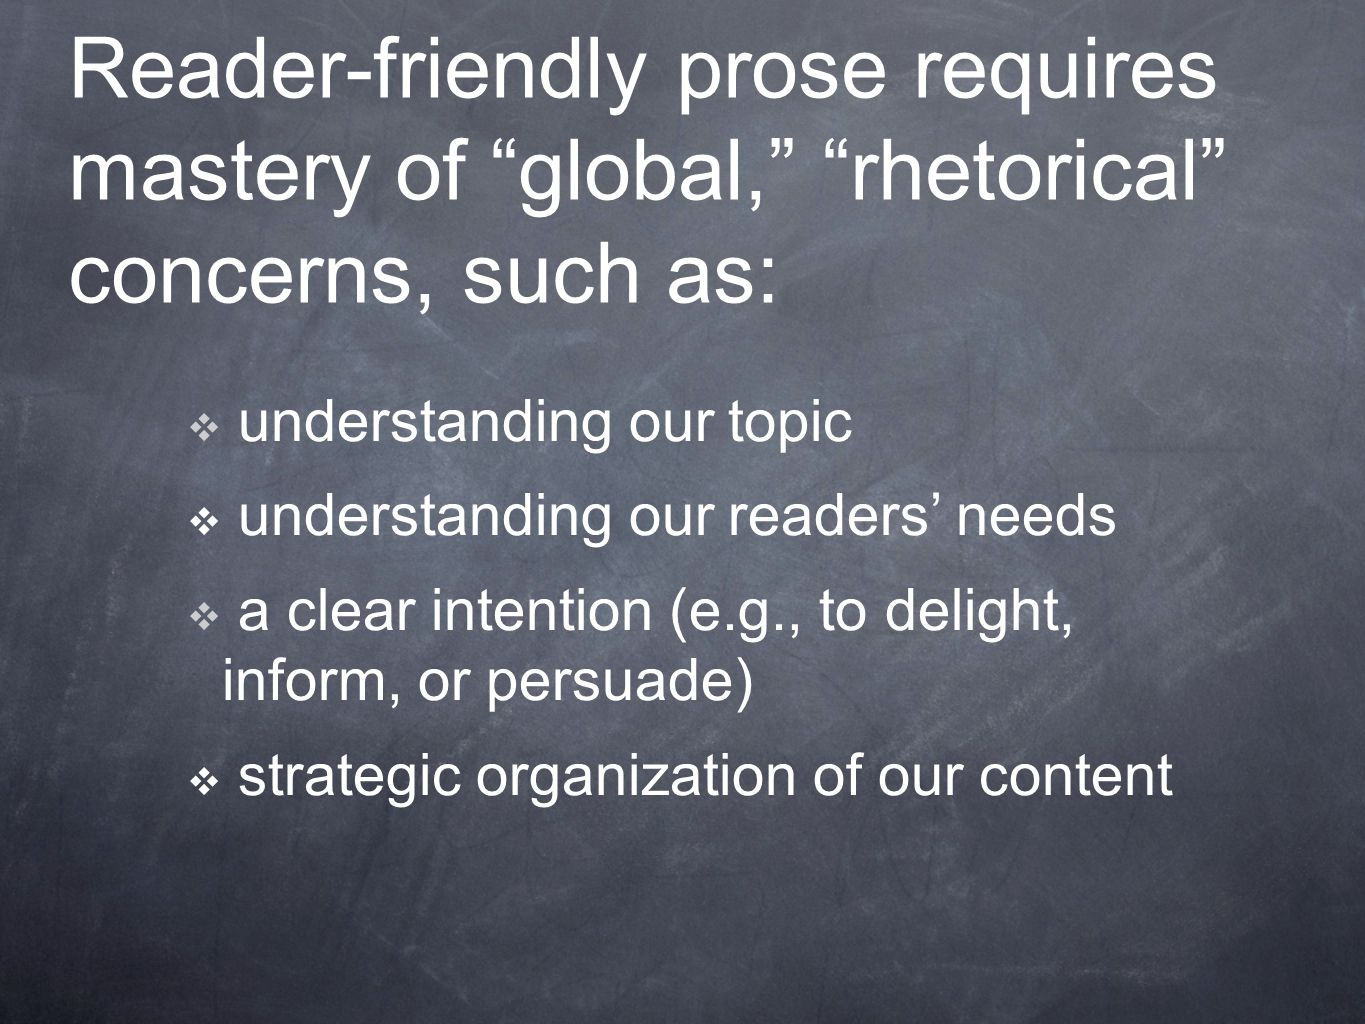 Reader-friendly prose requires mastery of global, rhetorical concerns, such as:  understanding our topic  understanding our readers' needs  a clear intention (e.g., to delight, inform, or persuade)  strategic organization of our content